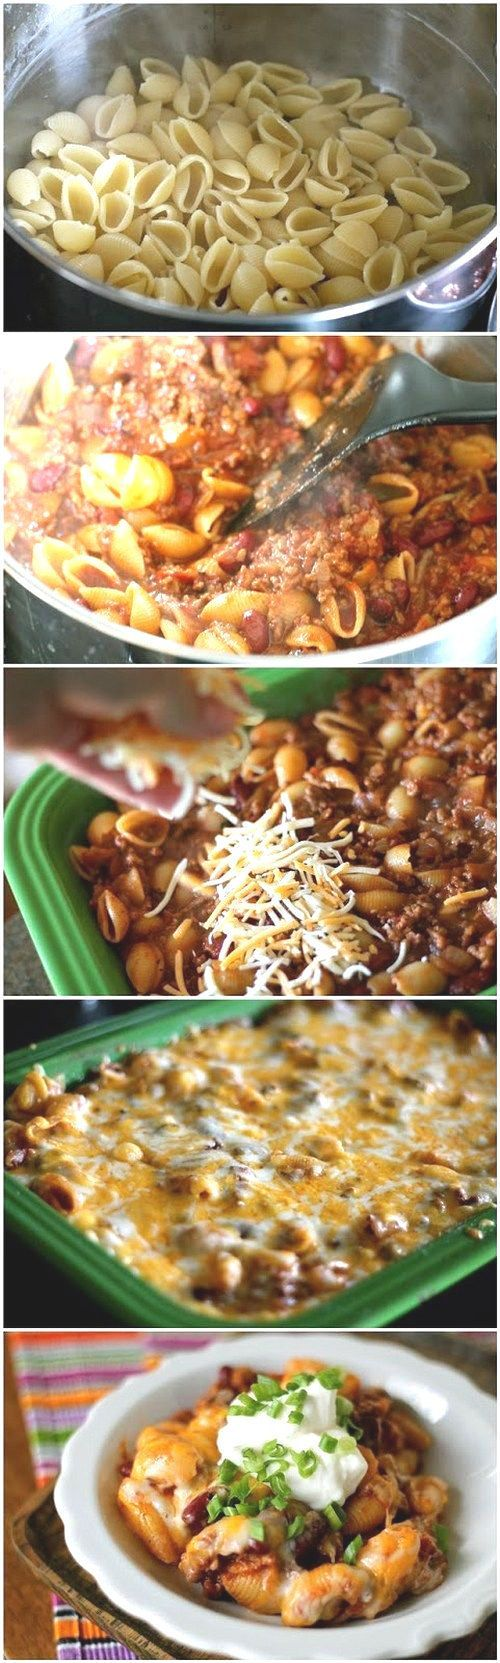 Chili Pasta Bake | CookJino